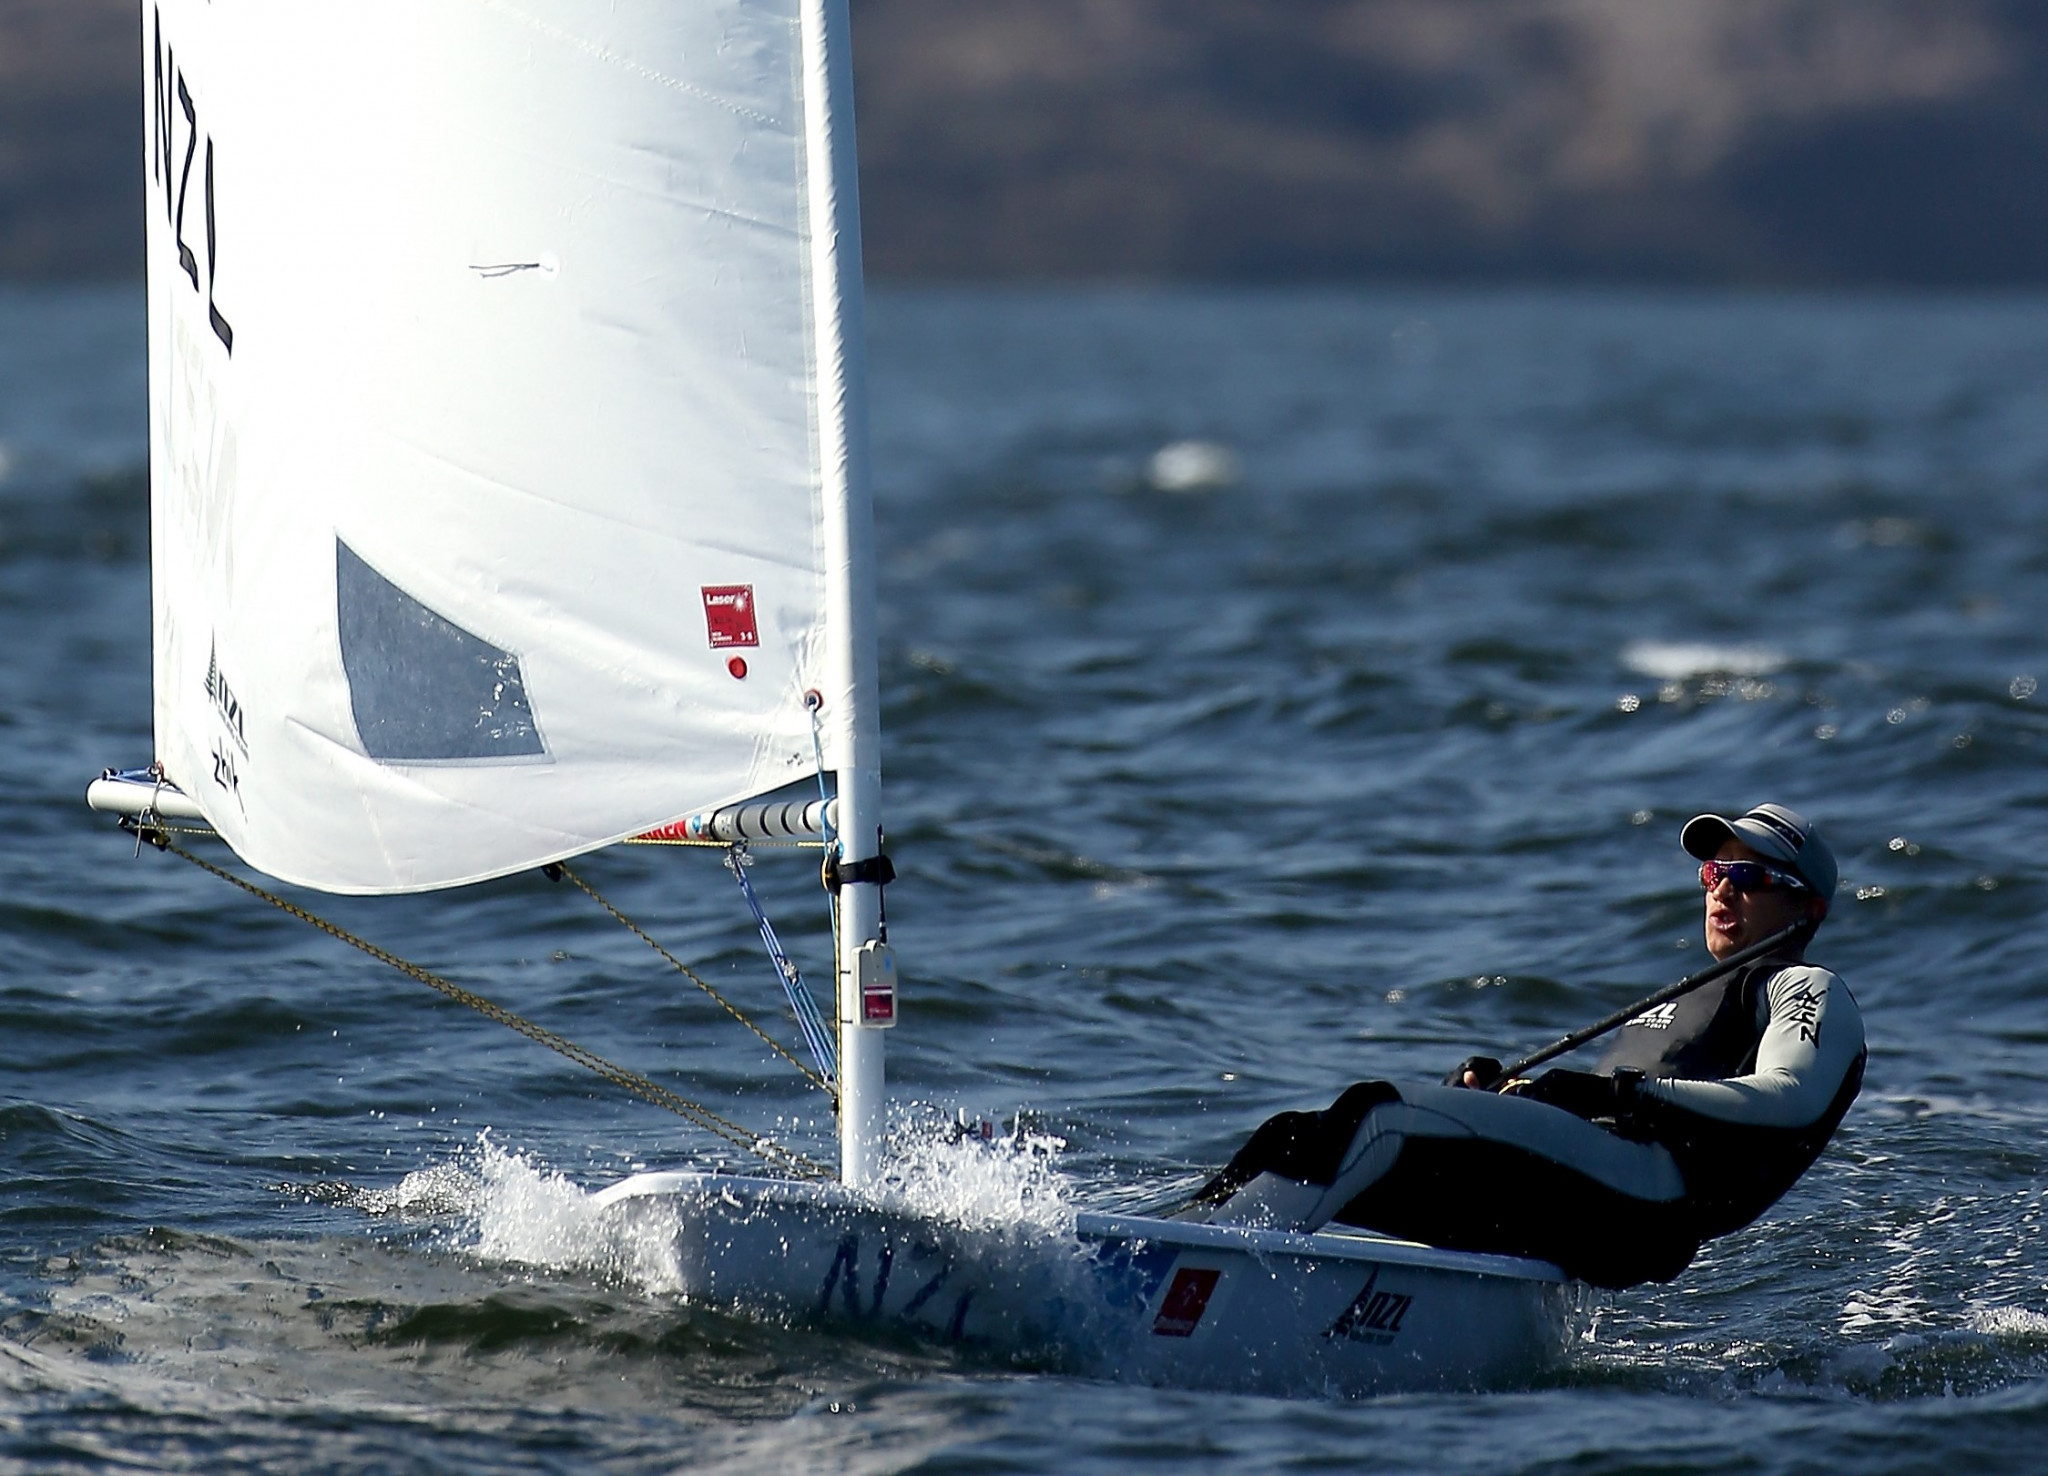 Maloney wins Finn Gold Cup after losing and regaining lead on dramatic final day in Porto